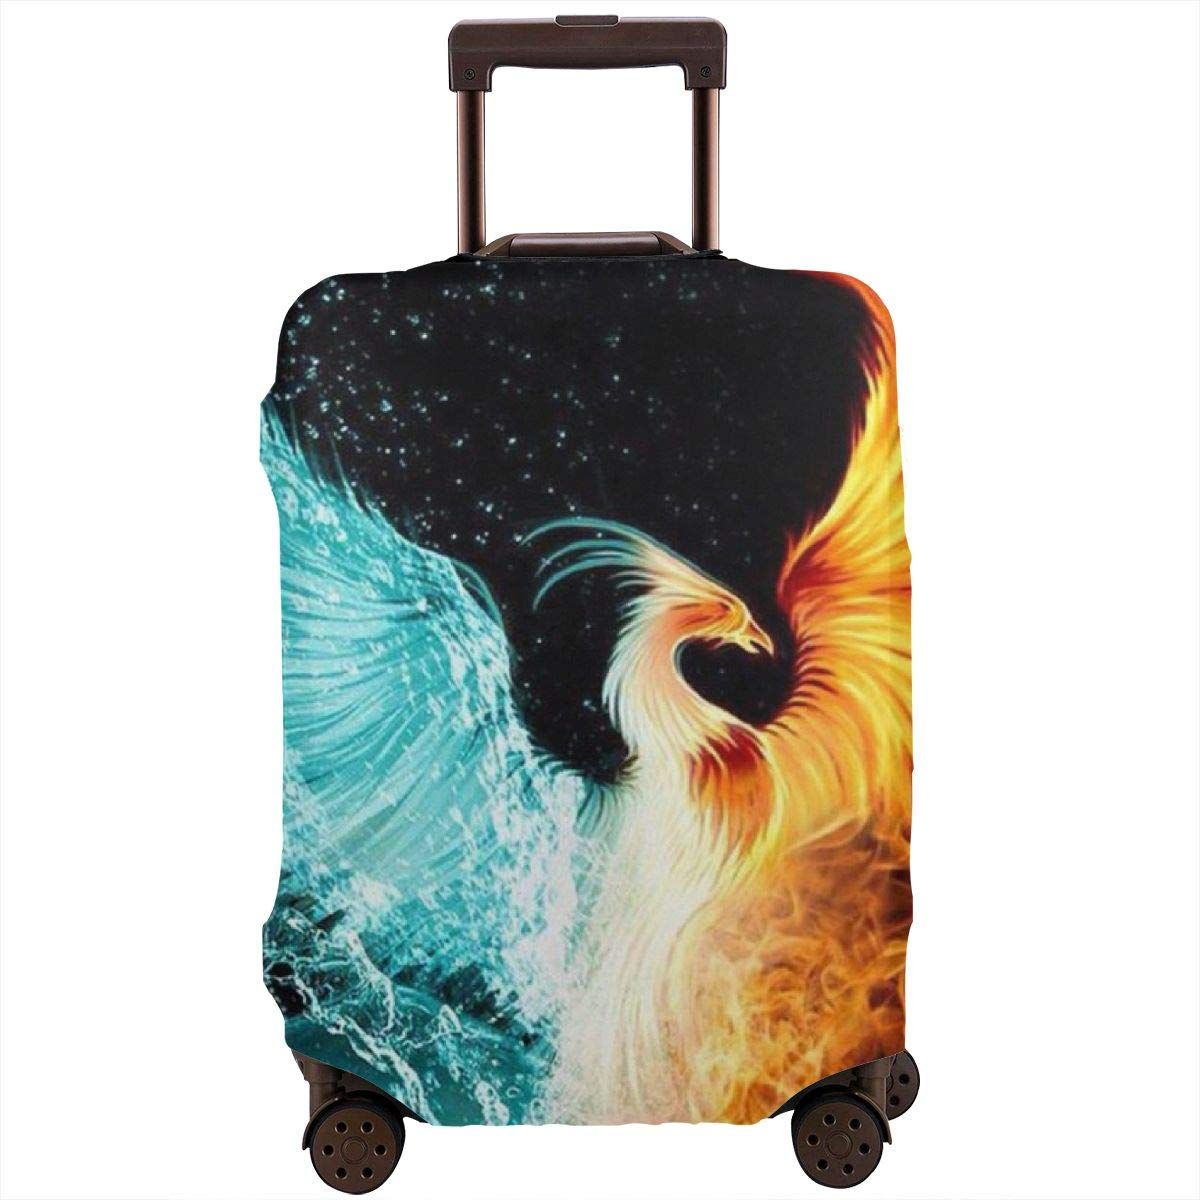 Luggage Cover Fire Water Phoenix Golden Red Burning Birds Protective Travel Trunk Case Elastic Luggage Suitcase Protector Cover